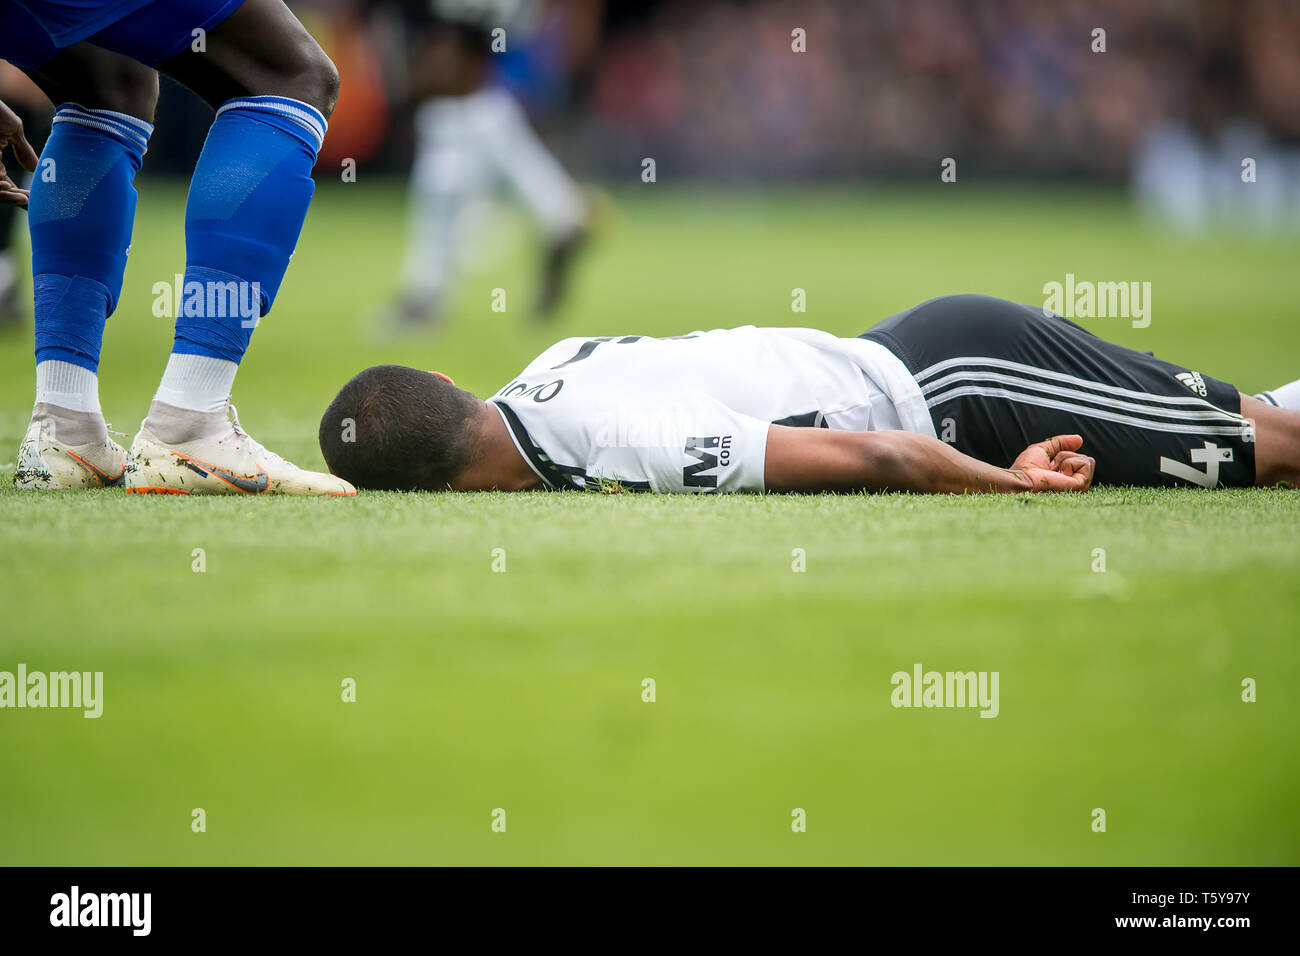 Craven Cottage, London, England, UK. 27th April 2019.  Denis Odoi of Fulham lies unconscious on the ground after a collision during the Premier League match between Fulham and Cardiff City at Craven Cottage, London, England on 27 April 2019. Photo by Salvio Calabrese.  Editorial use only, license required for commercial use. No use in betting, games or a single club/league/player publications. - Stock Image